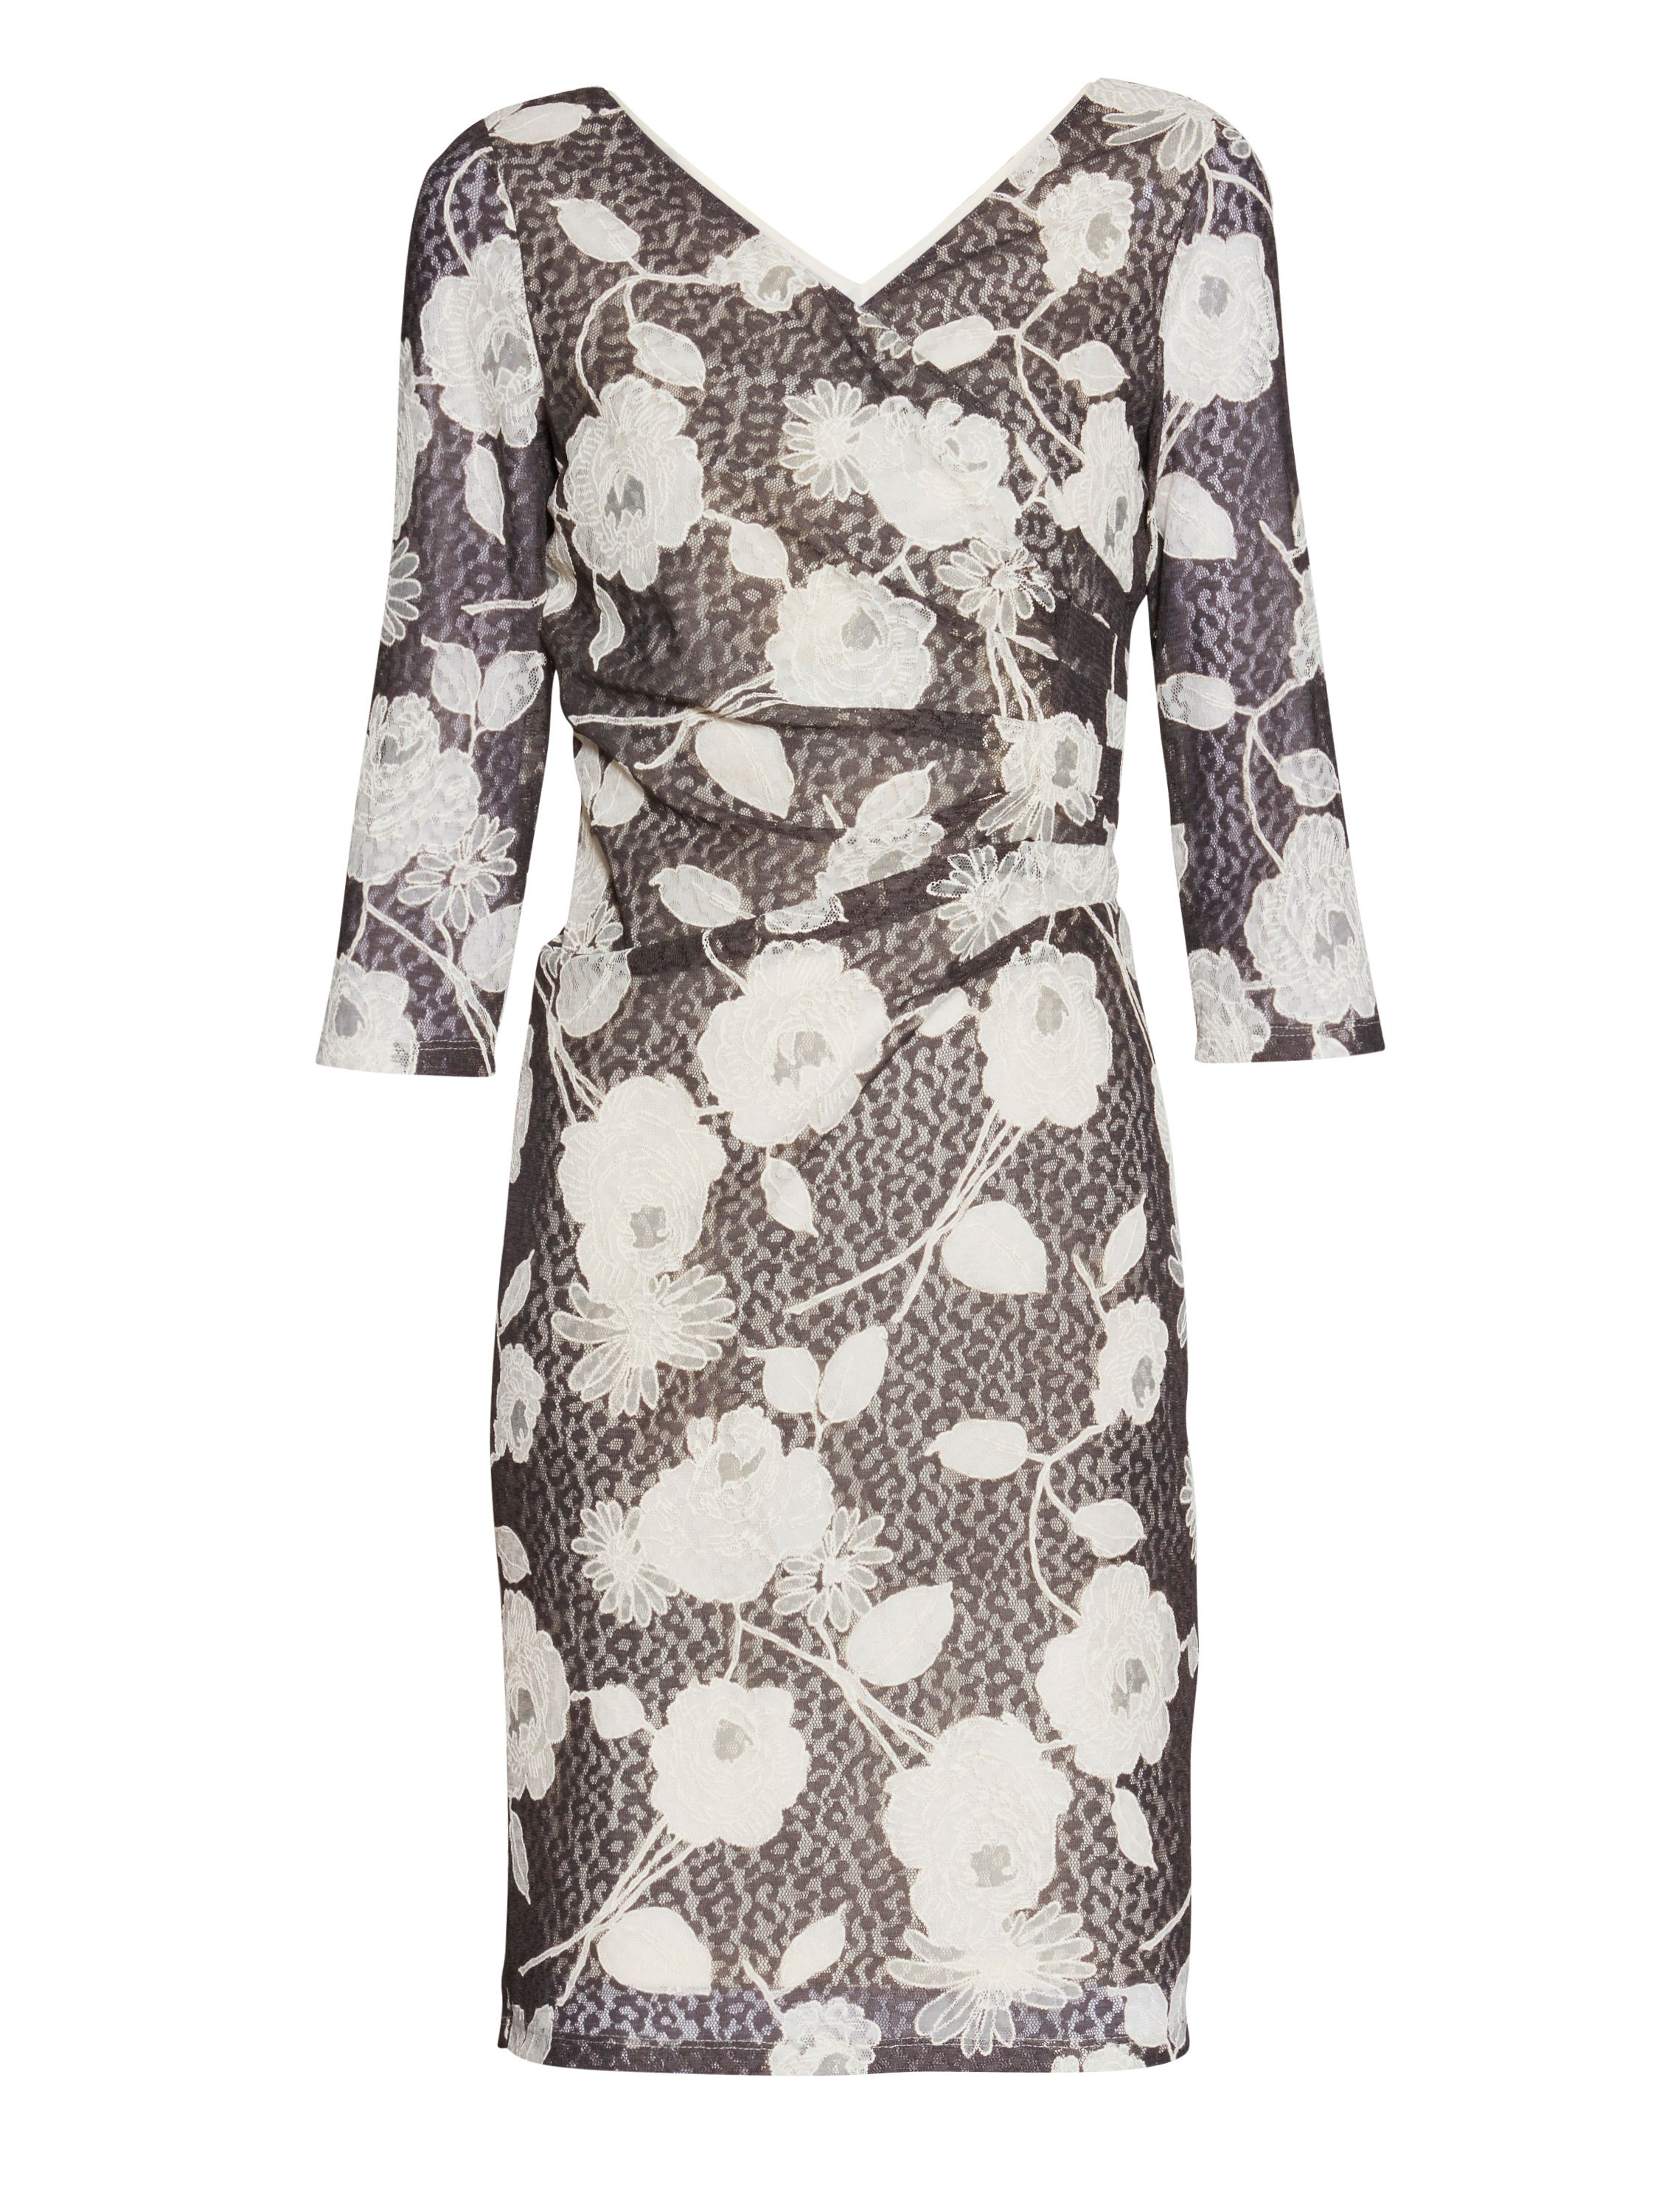 Gina Bacconi 3d floral printed lace Dress, Grey